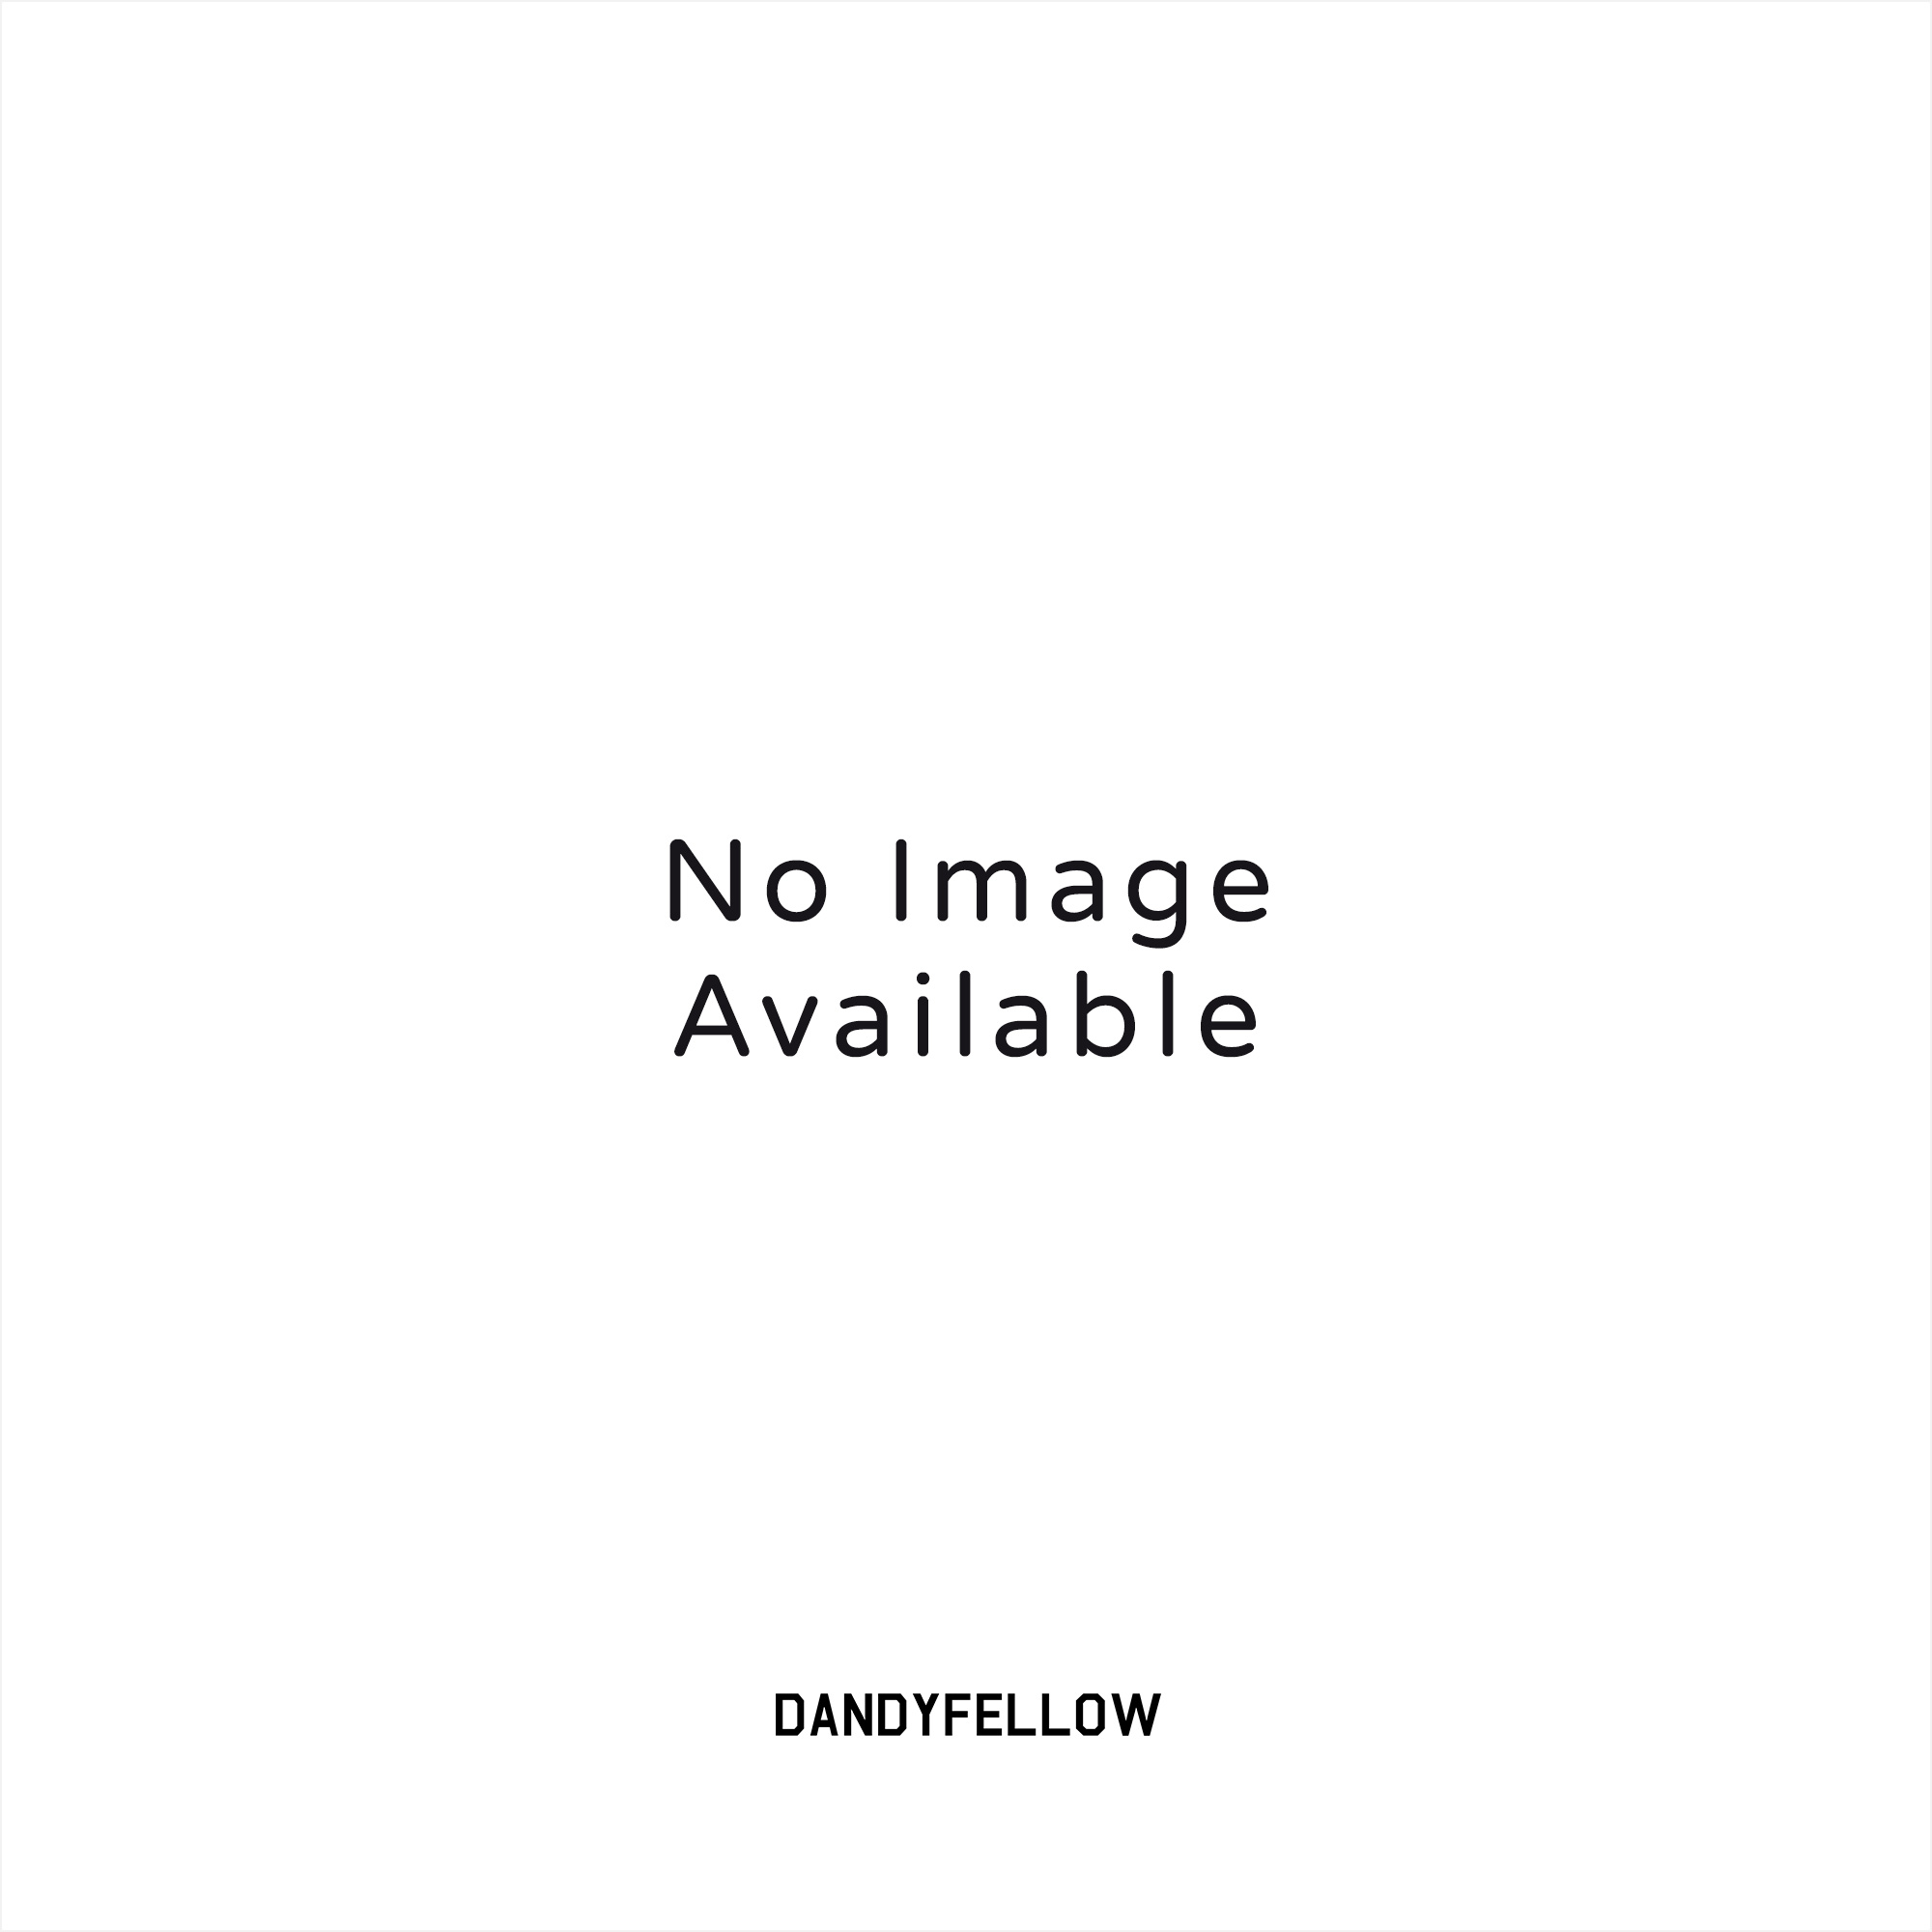 9662838466e Adidas Originals Haven (Black) at Dandy Fellow